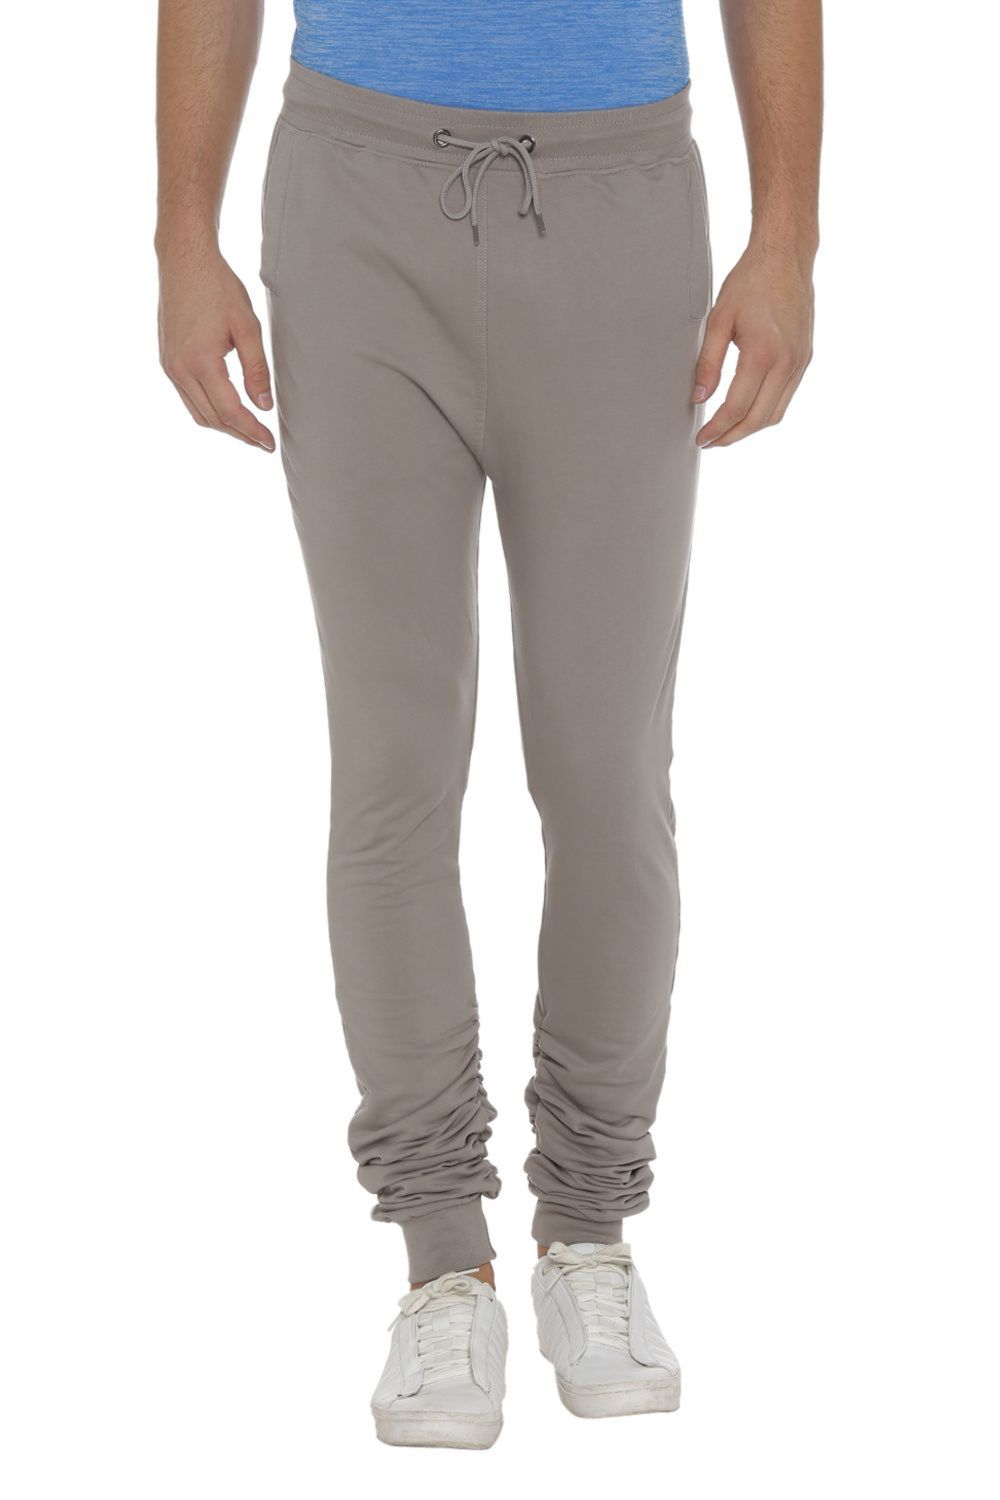 6c6e01f56c4 Buy Mens Trousers and Chinos Online in India